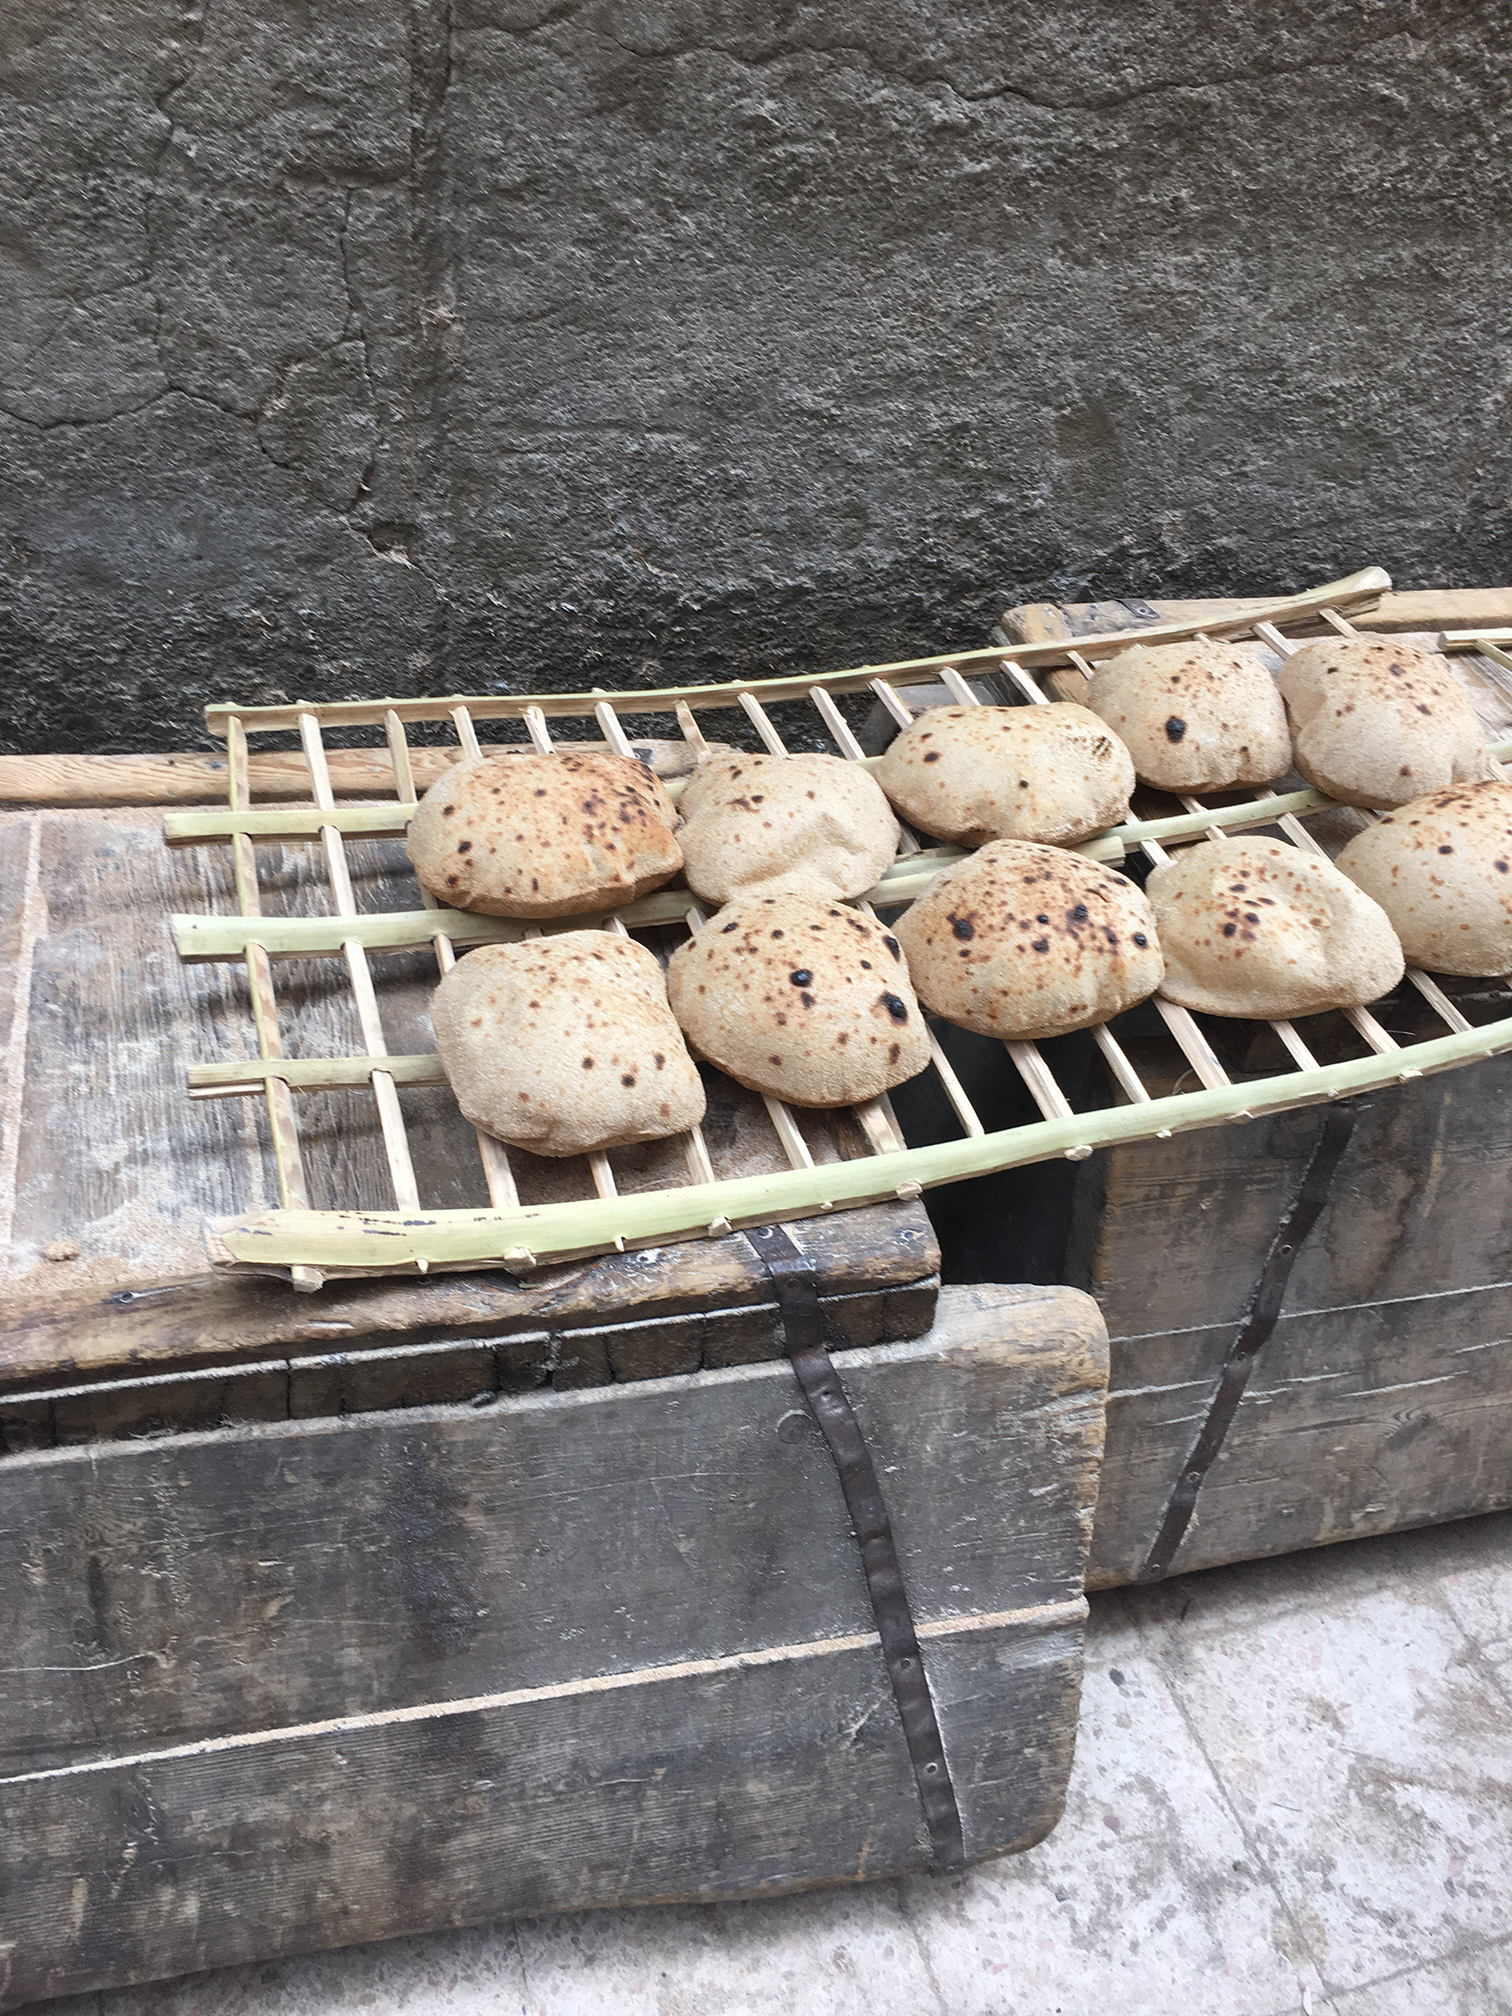 Hot bread on a rack. Photo by Mariam Taher.